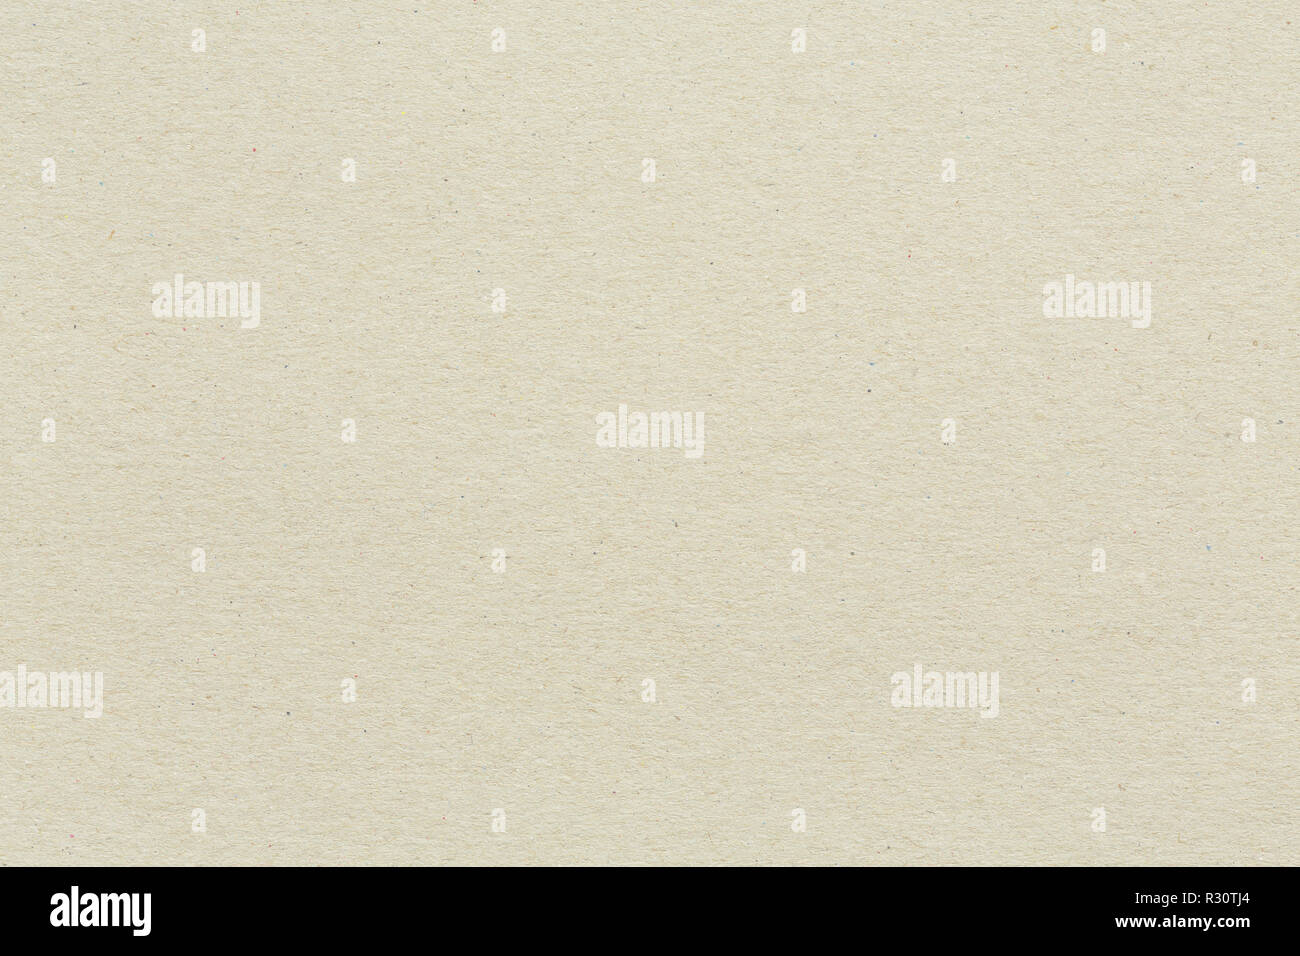 Recycled paper or cardboard background with coloured flecks and fibre texture - Stock Image